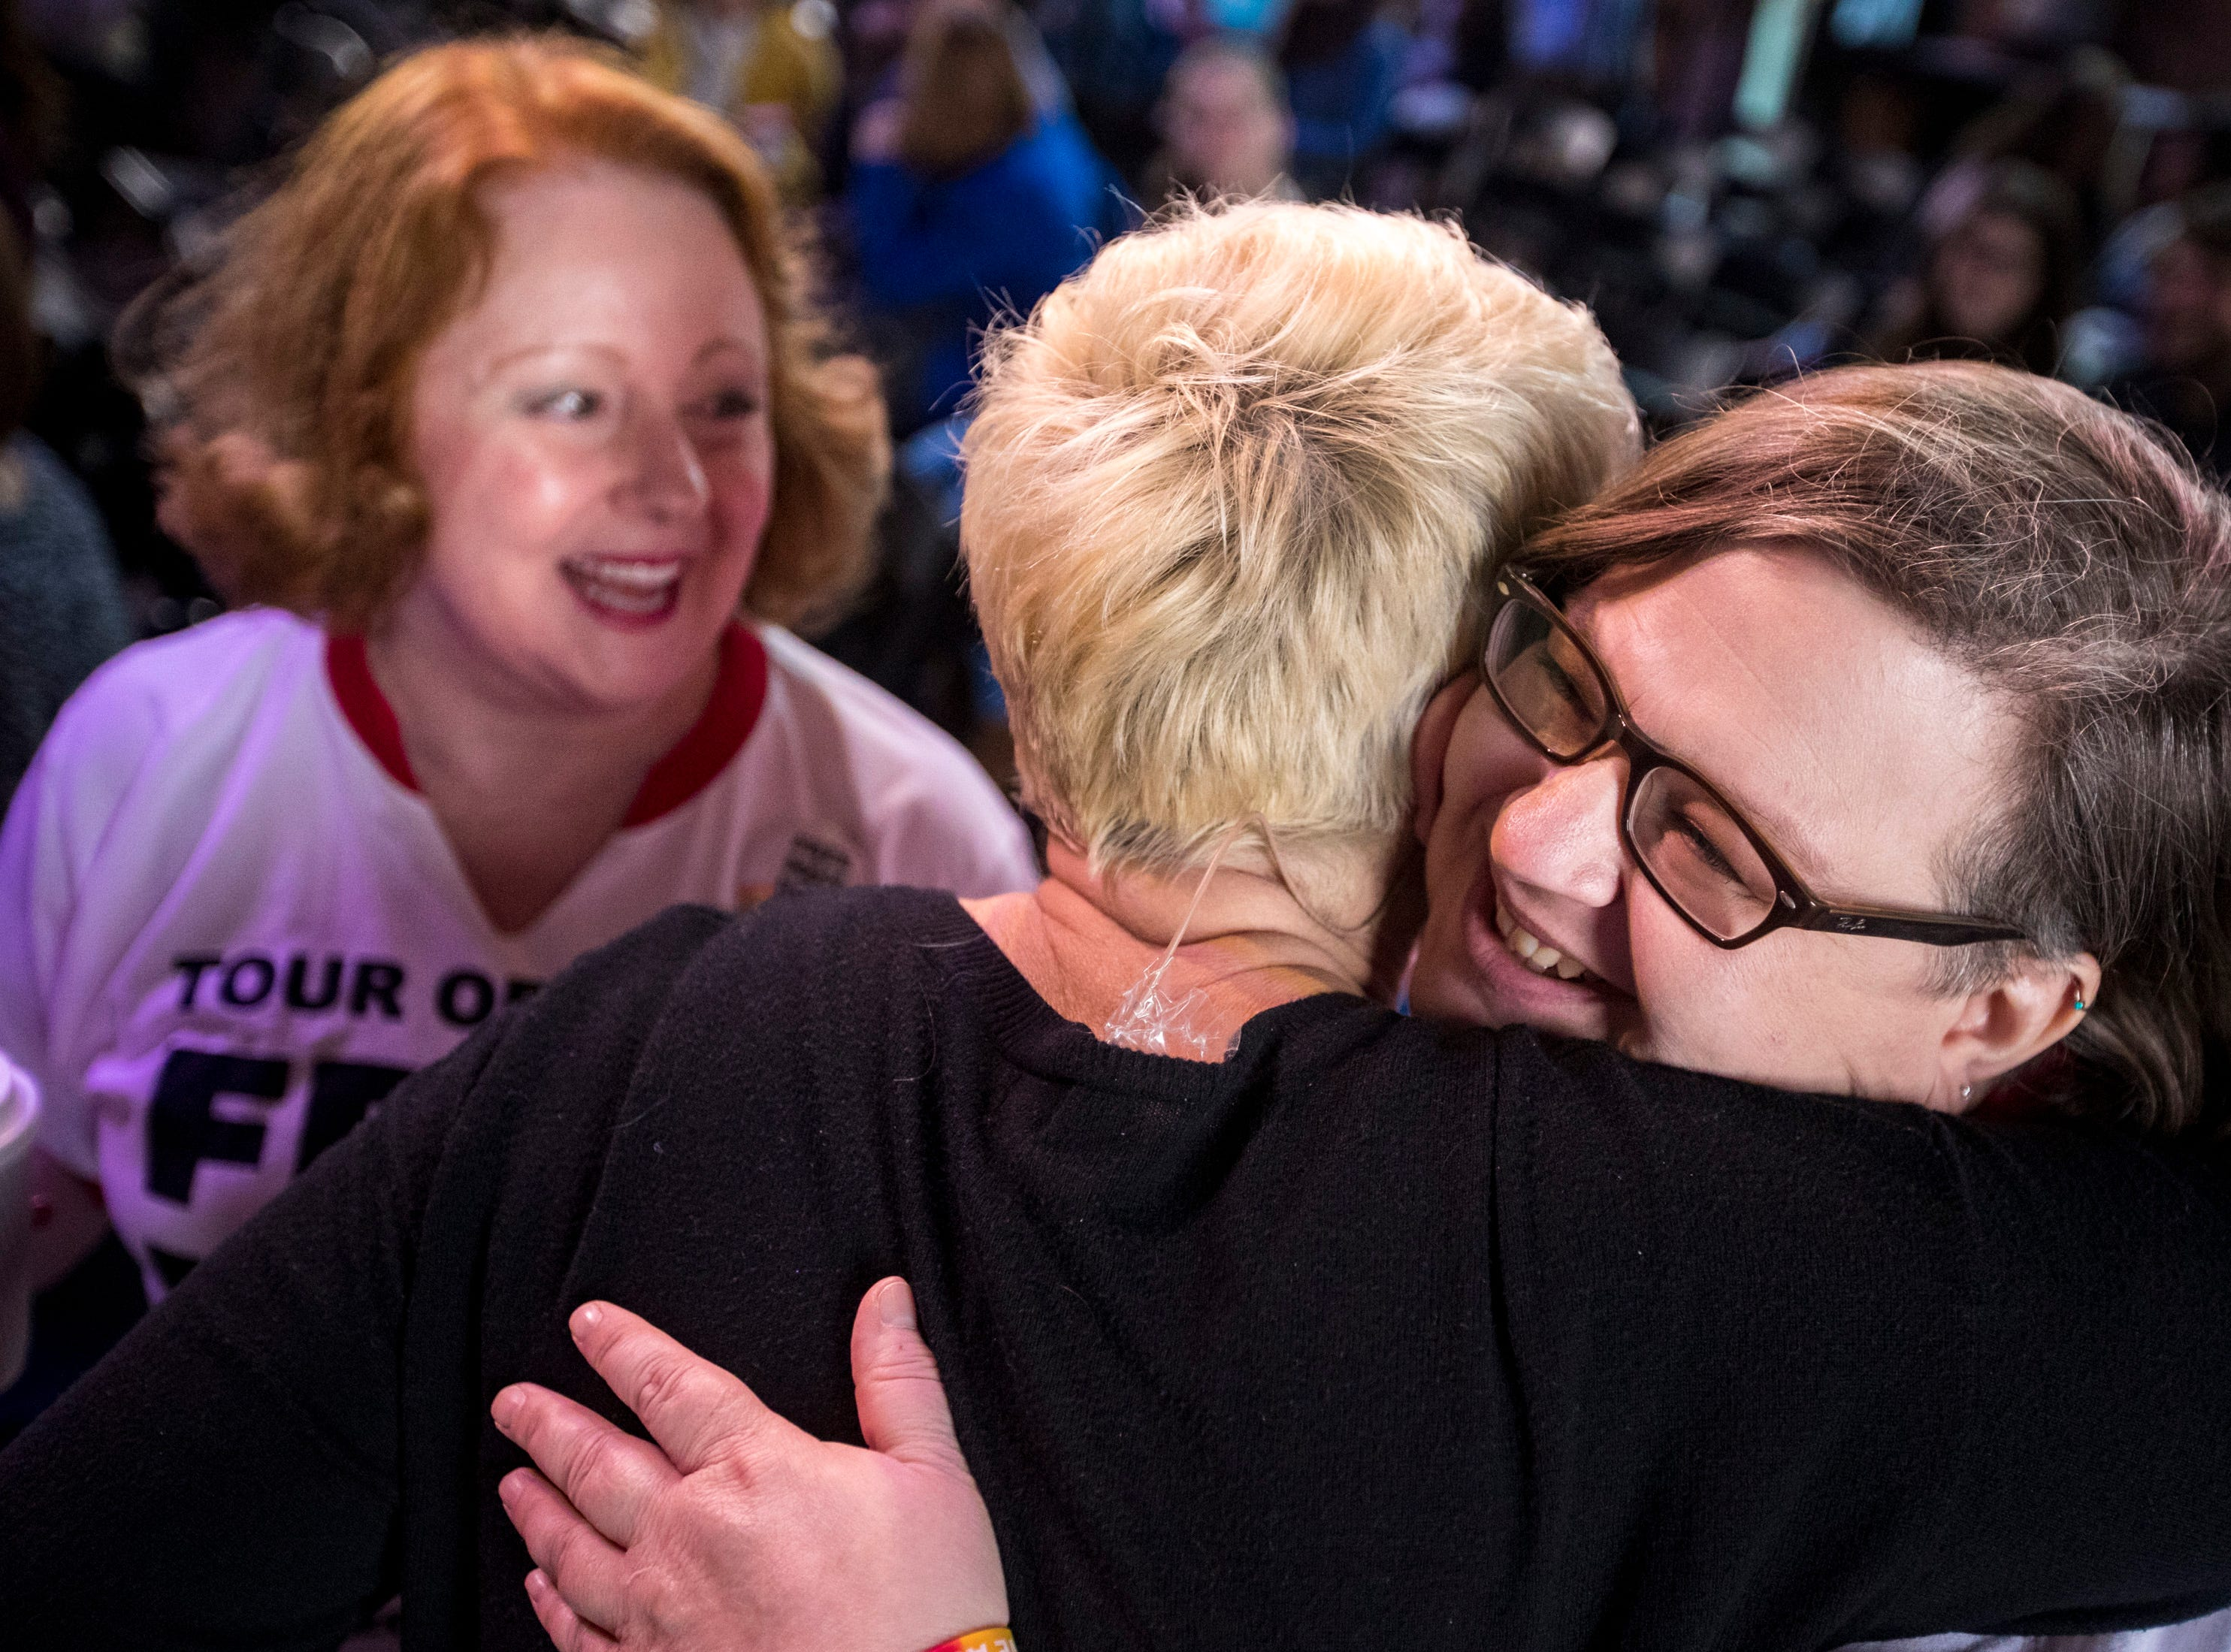 """Mama bear"" Stacy Drake gets a hug from Sara Cunningham before Cunningham speaks at GracePointe Church in Nashville on Sunday, March 31, 2019. Cunningham spoke about her journey to accepting her son as a gay man while keeping her faith."